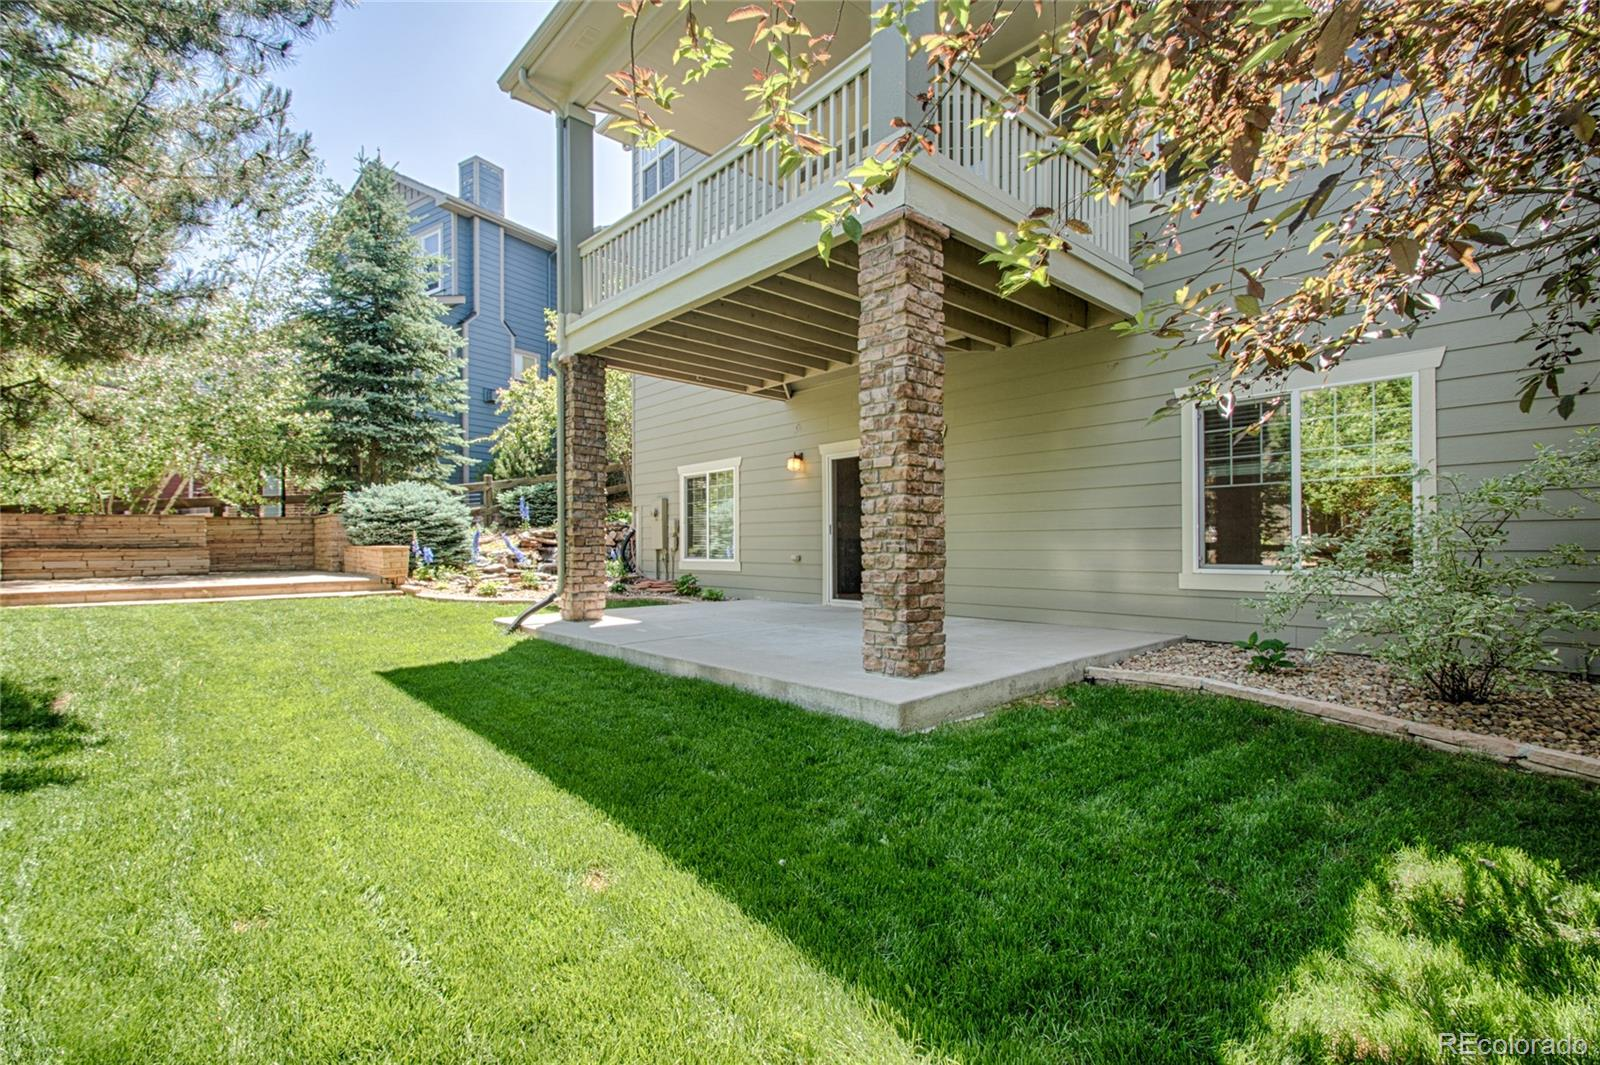 MLS# 6477301 - 4 - 25045 E Park Crescent Drive, Aurora, CO 80016